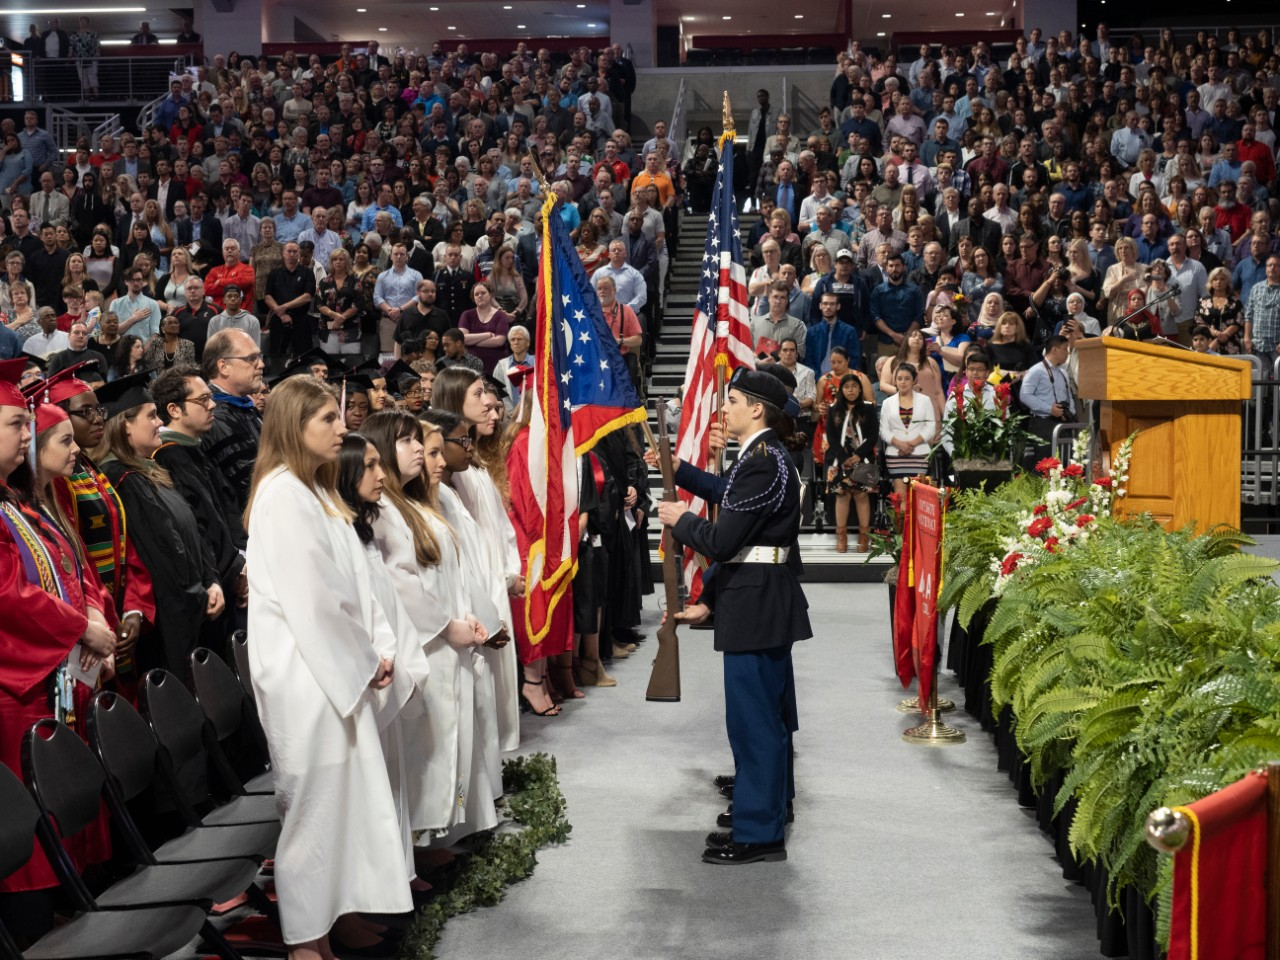 The scene on stage during the presentation of the colors at Fifth Third Arena.